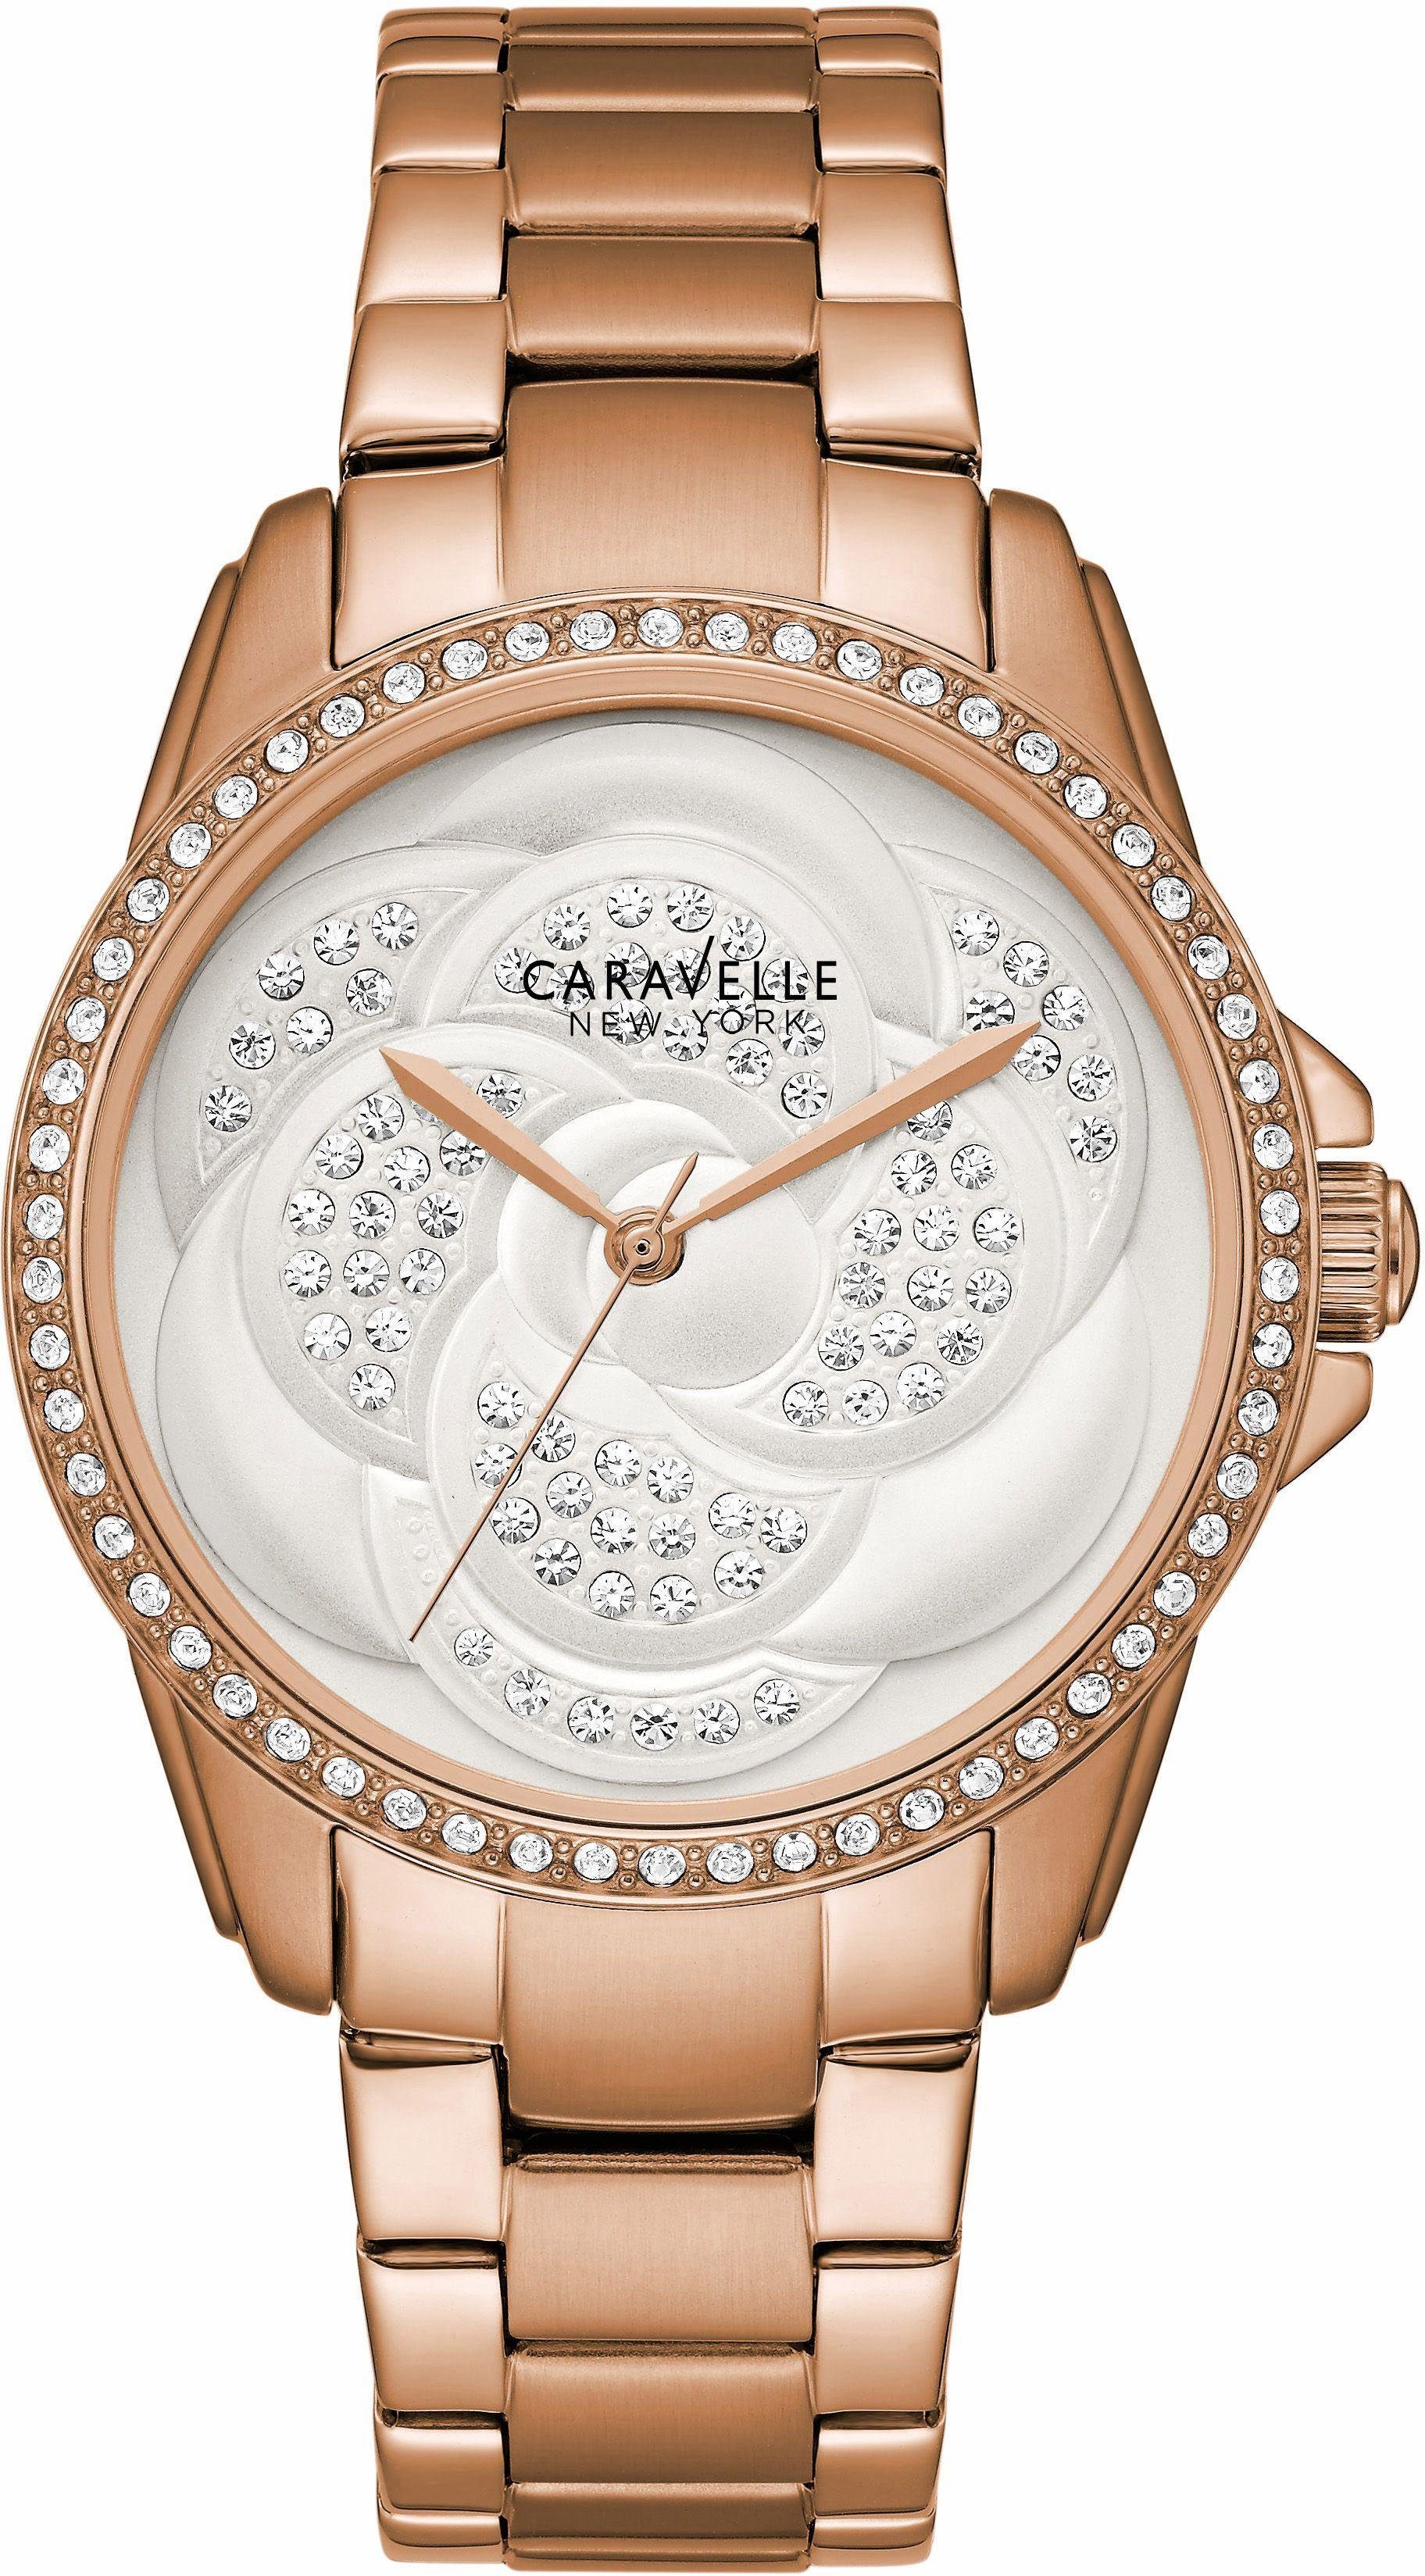 Caravelle New York Quarzuhr »Boyfriend, 44L233«